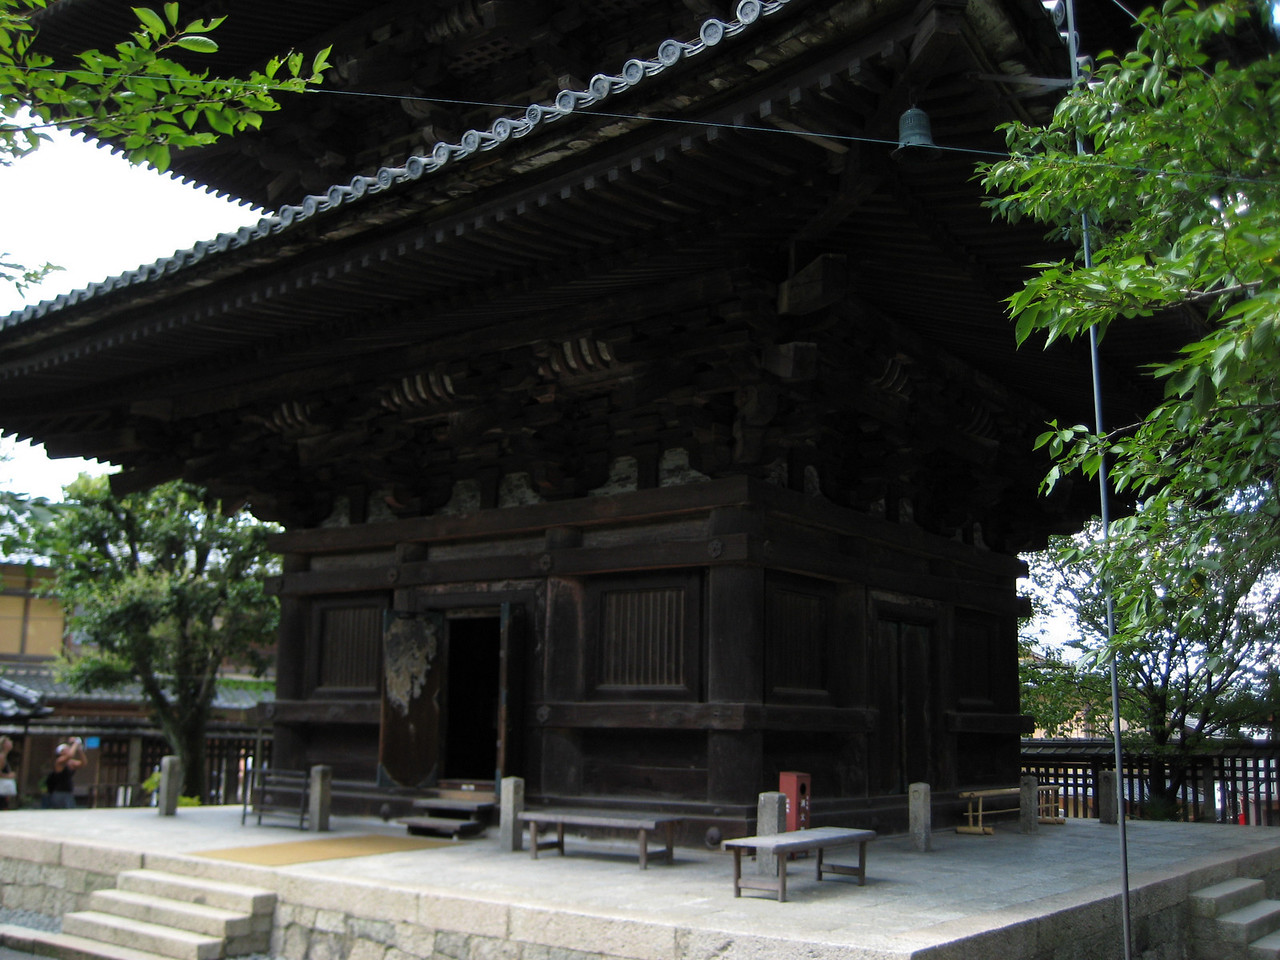 The entrance to the pagoda